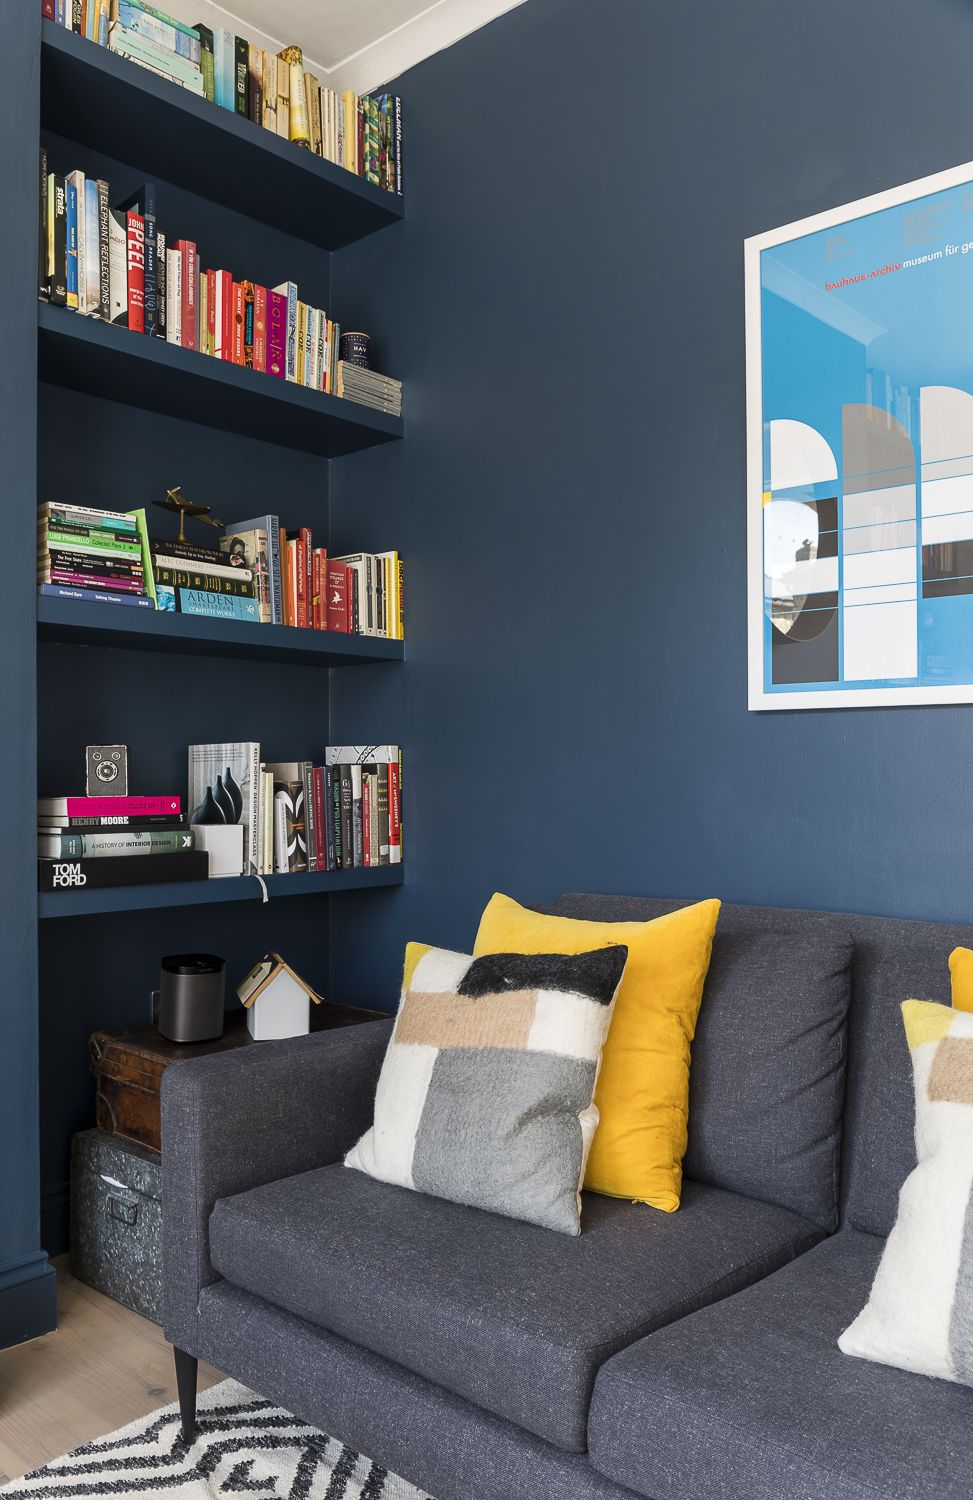 Blue And Yellow A Match Made In Heaven Dark Blue Walls With Yellow Accent Blue Accents Living Room Blue And Yellow Living Room Living Room Wall Color #yellow #blue #living #room